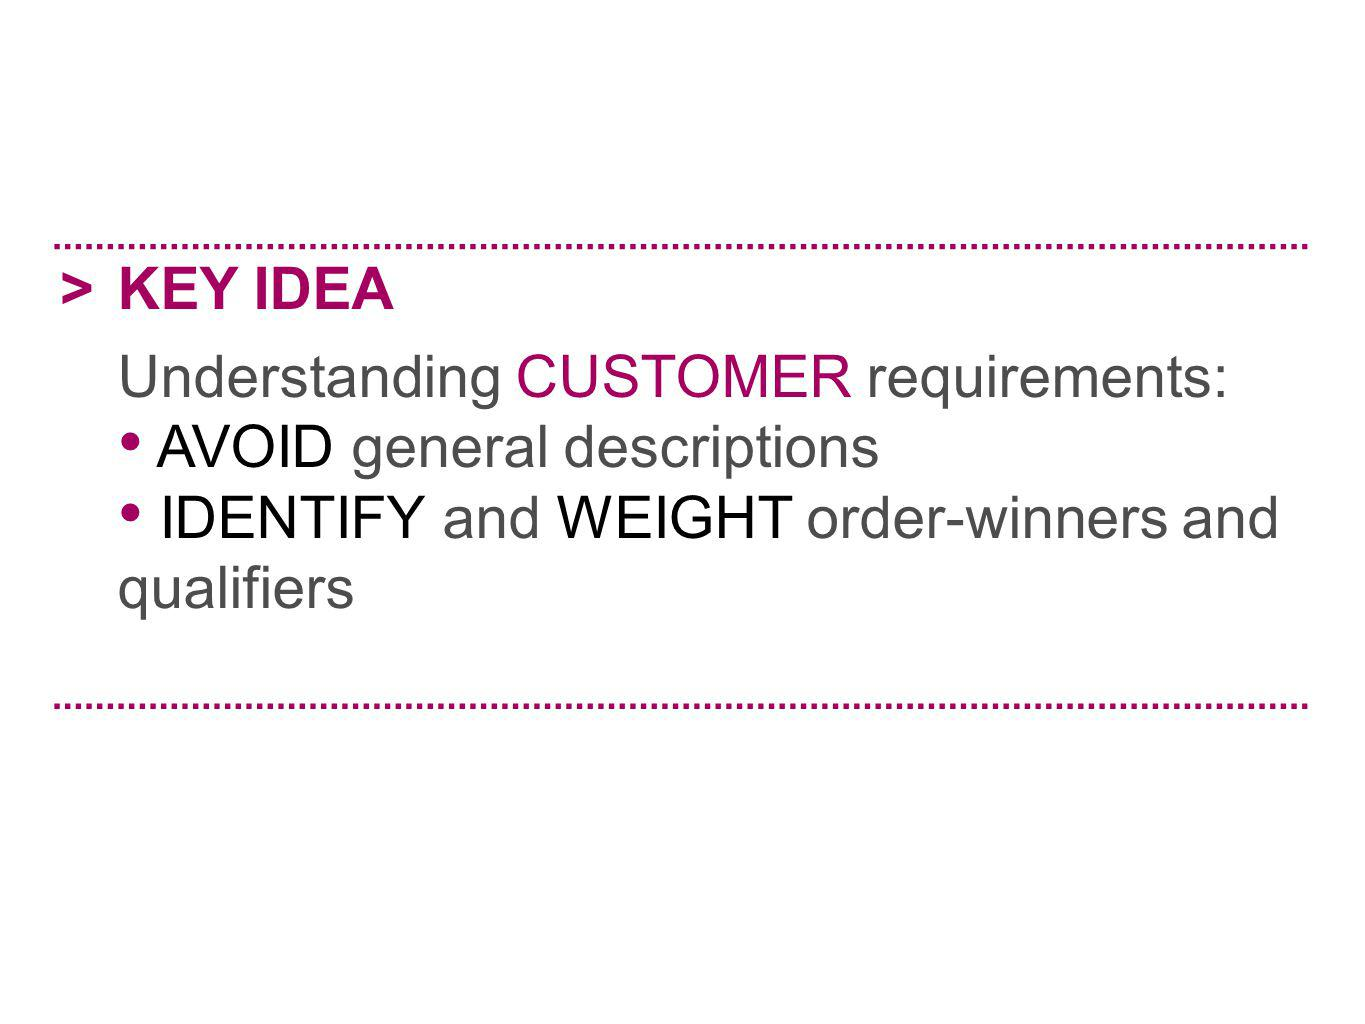 > KEY IDEA. Understanding CUSTOMER requirements: AVOID general descriptions.